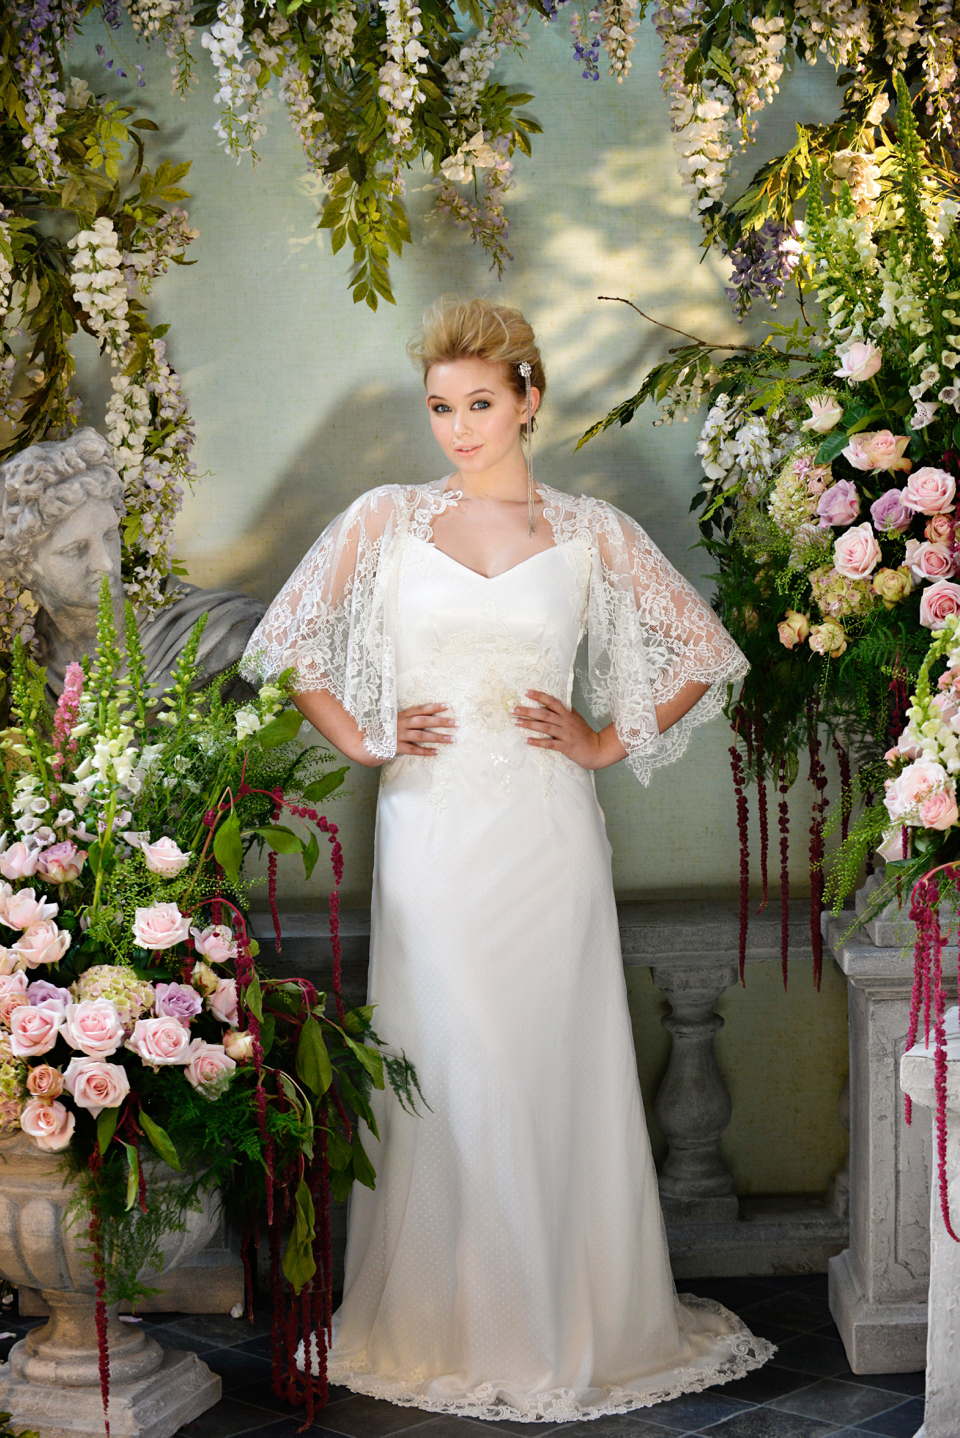 Serenade Wedding Dress from Terry Fox's Siren Song Collection